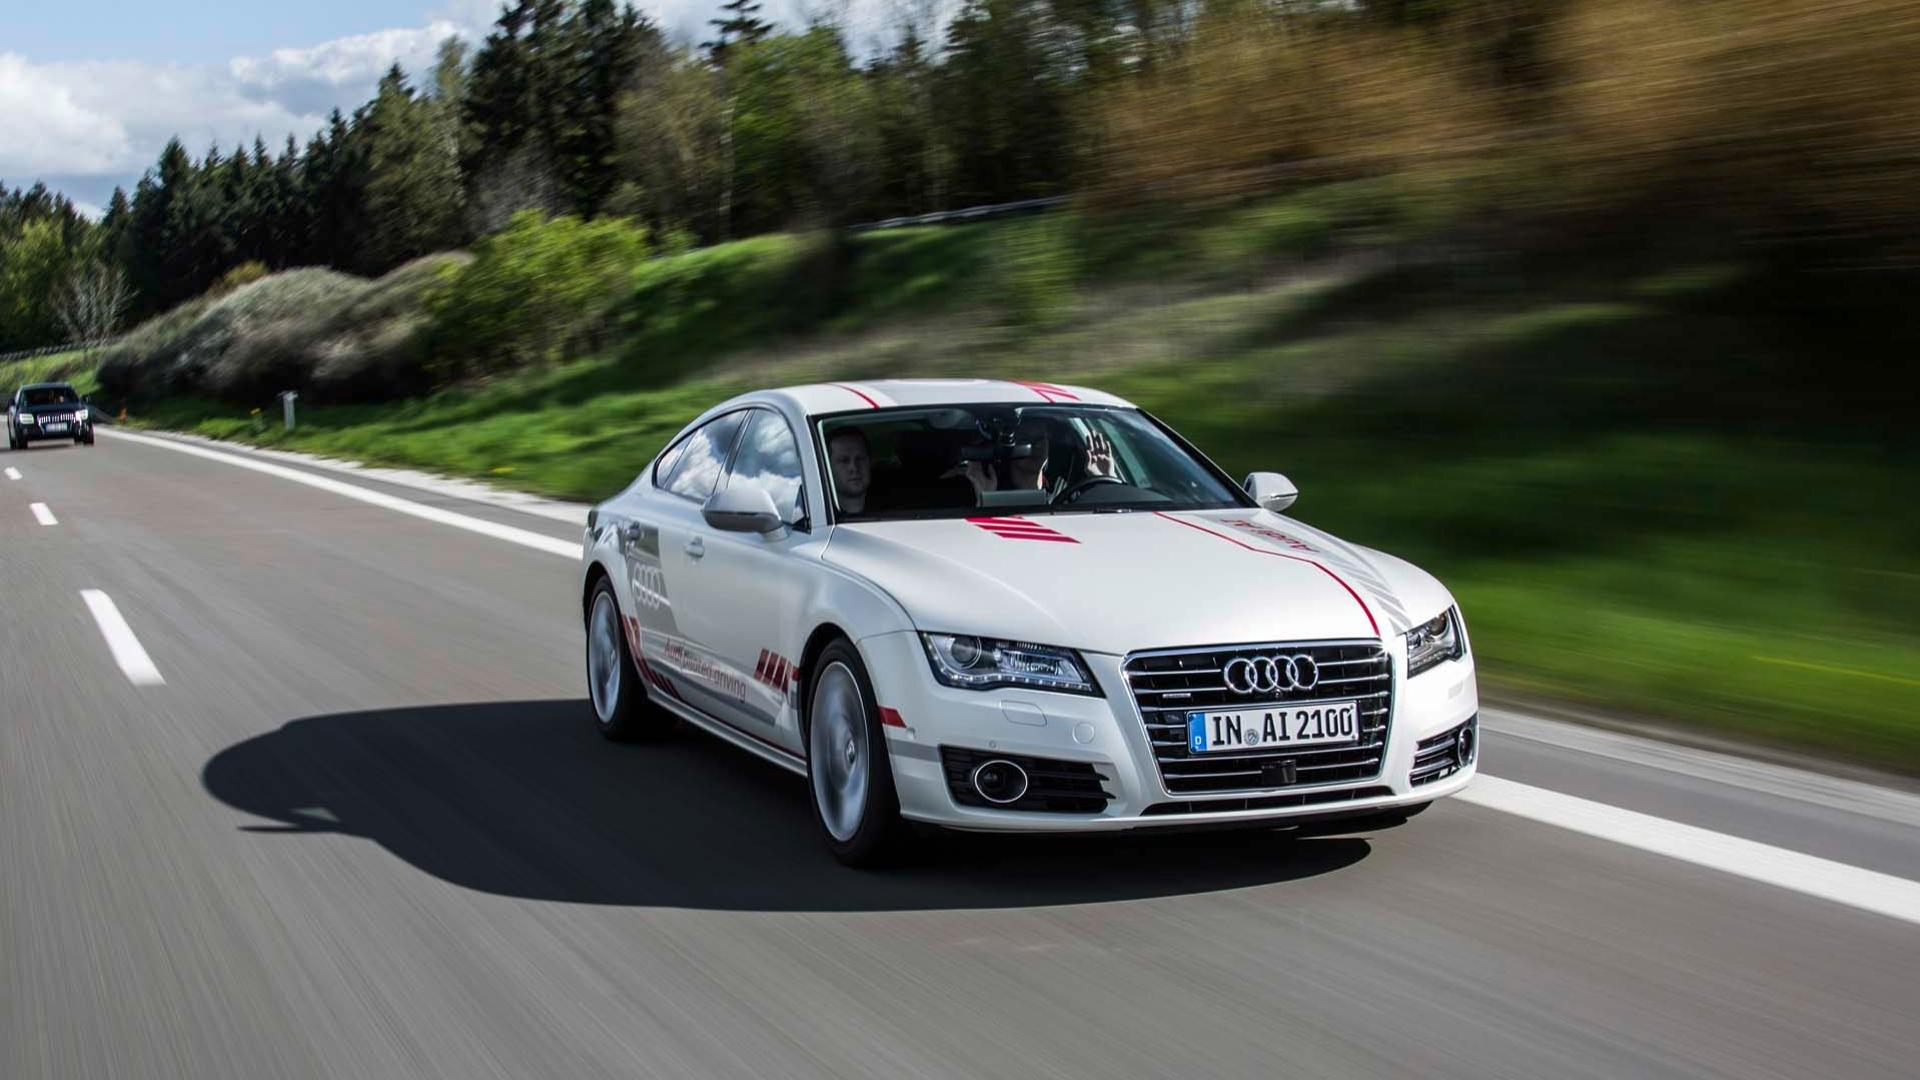 Audi Piloted Driving >> Audi A7 Piloted Drive Concept Demos Offered To Public In Germany